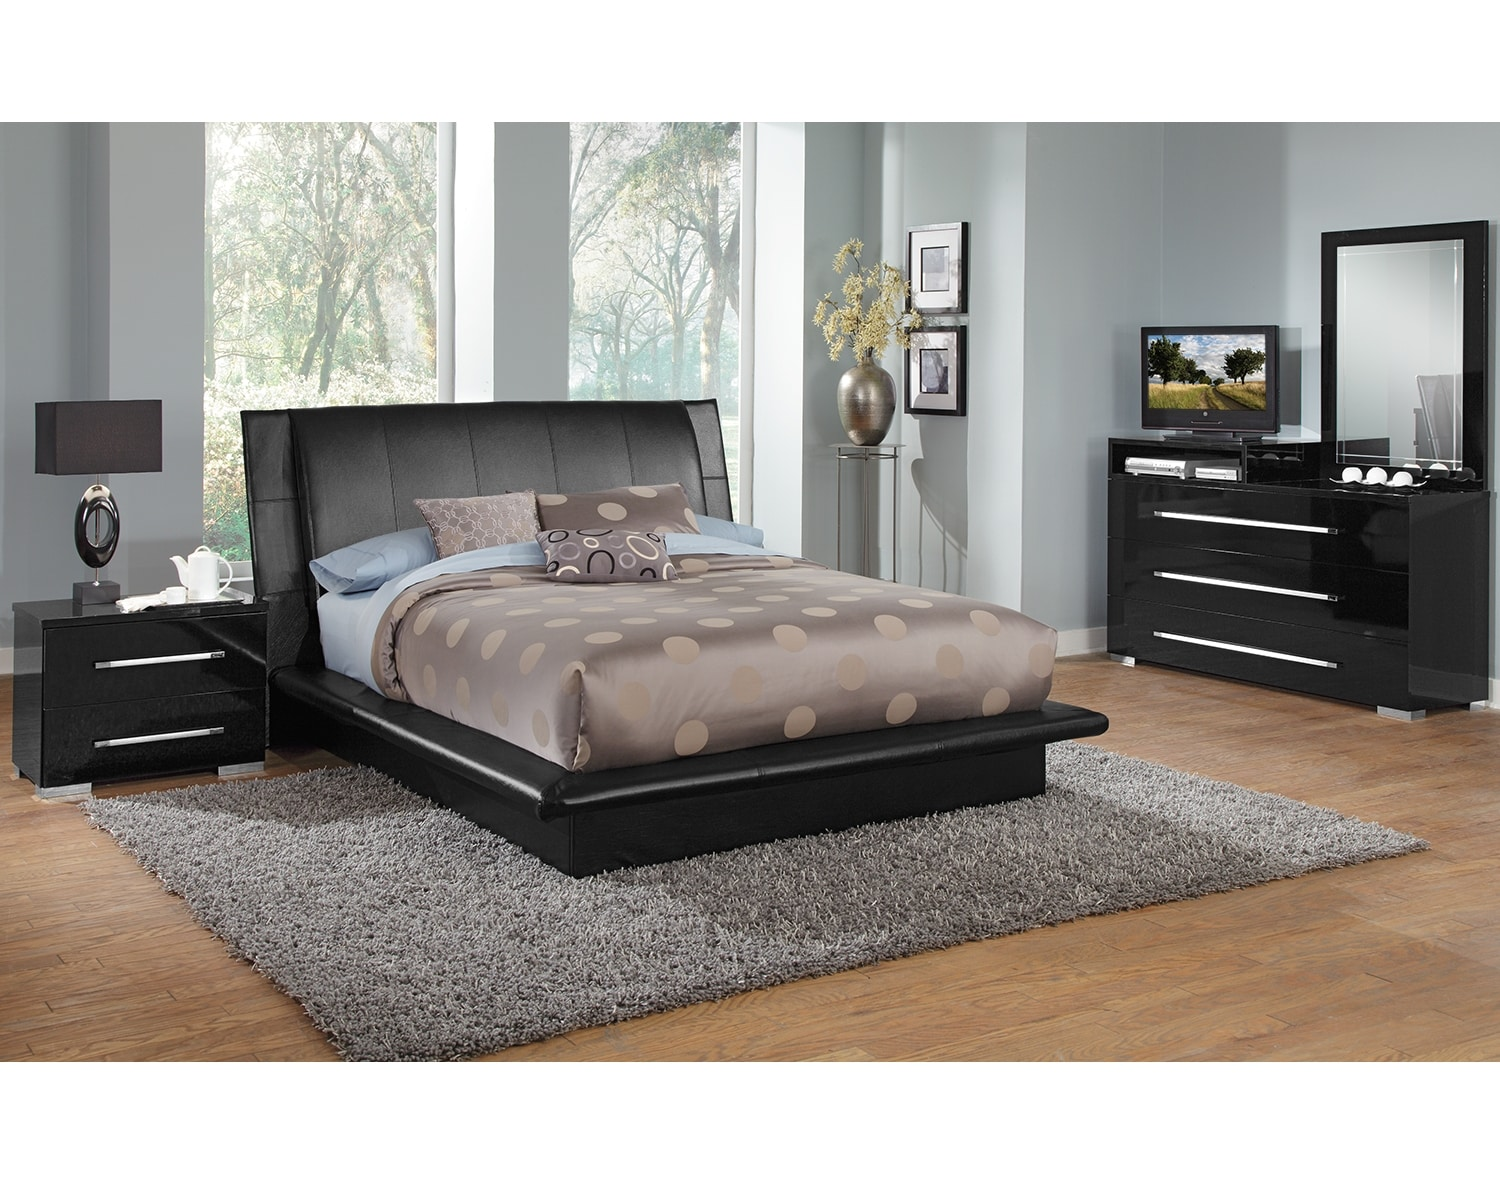 American Signature Furniture Outlet American Signature Furniture Furniture Stores Furniture